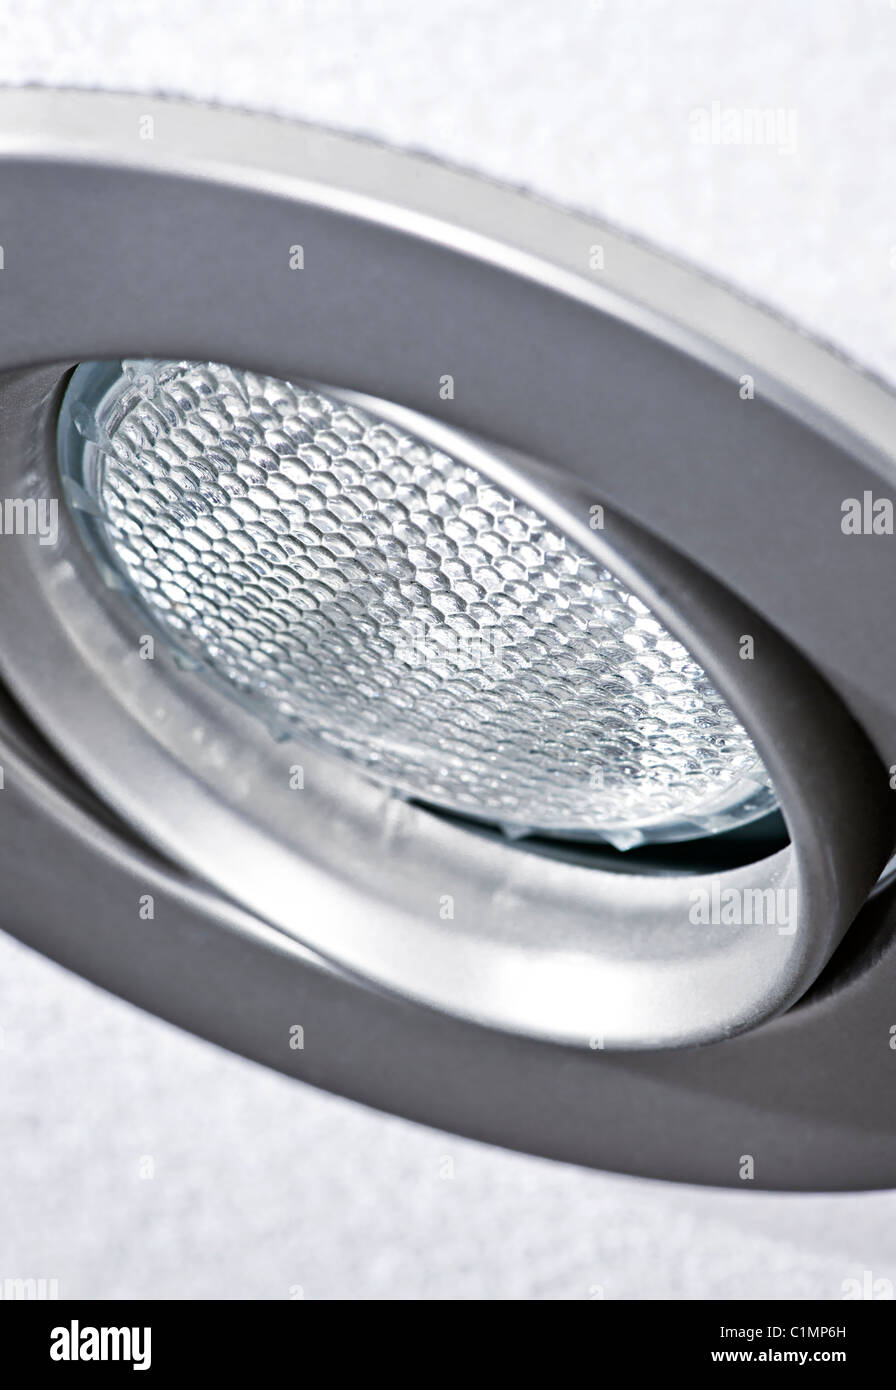 Closeup of pot light recessed lighting in ceiling tile - Stock Image